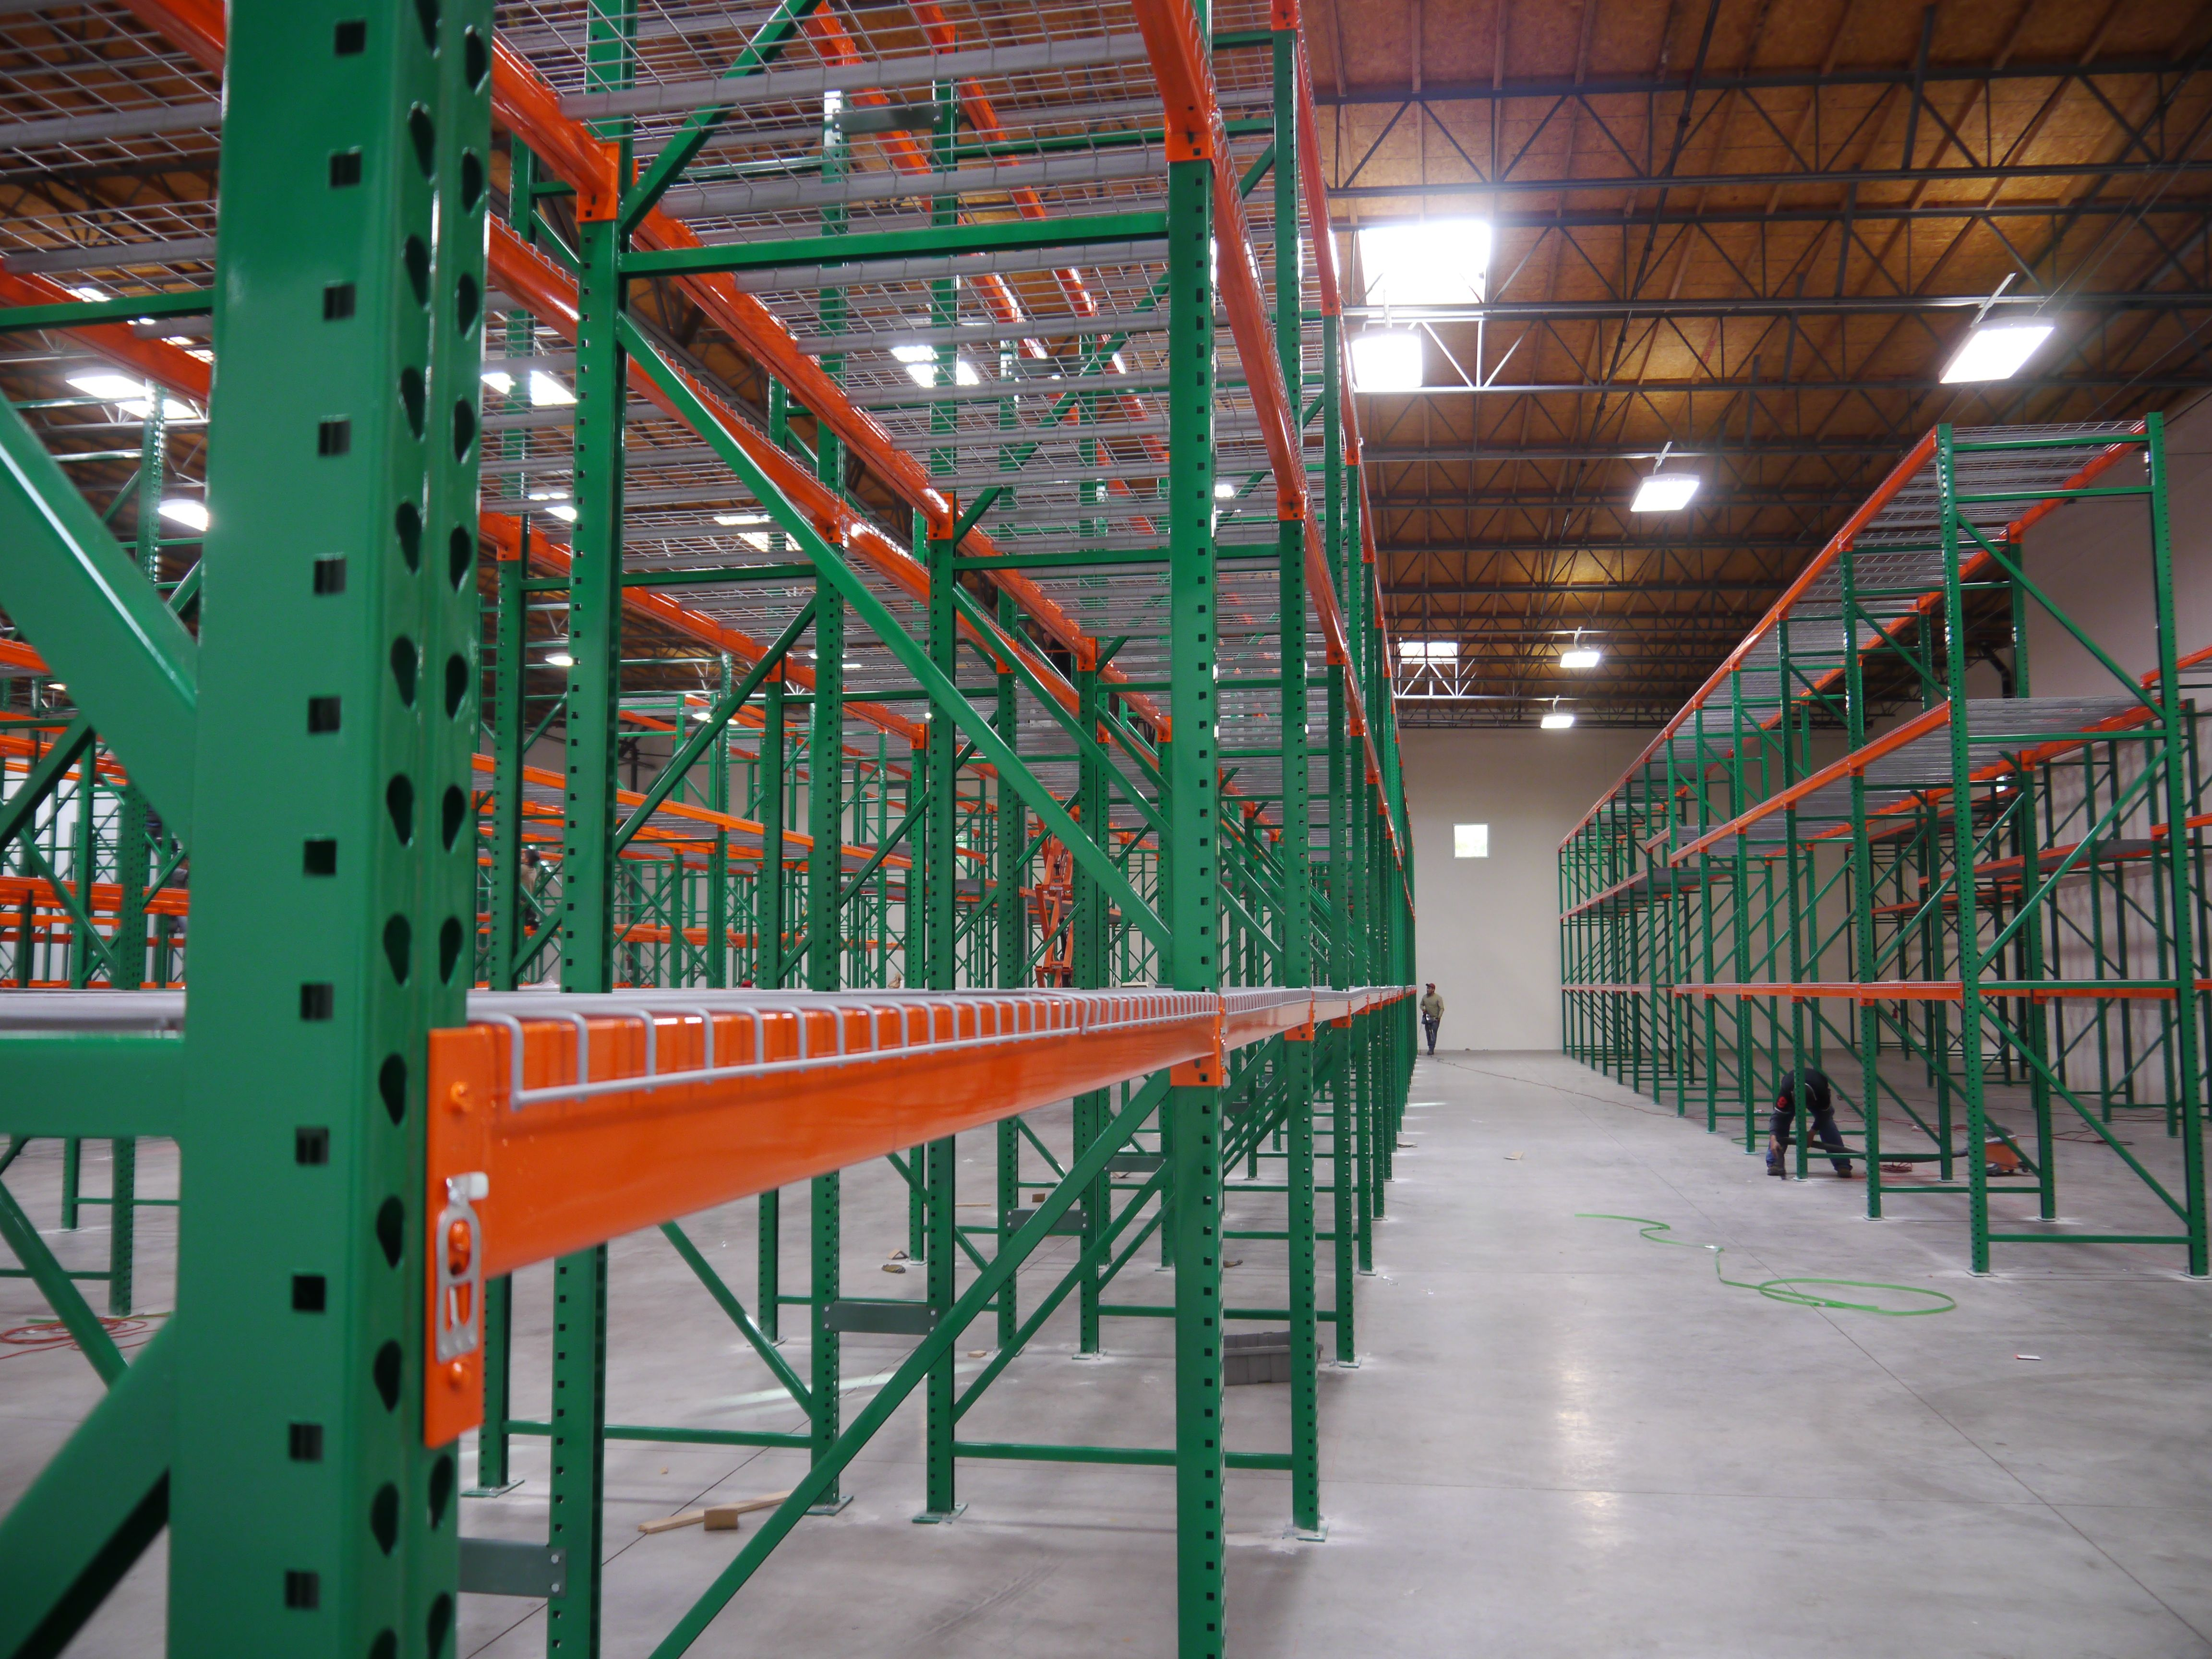 The Machines We Use Can Produce Light And Heavy Duty Pallet Racking Material They Can Make Any Order Size No Matter The Length And Gauge We Have Decades Of E